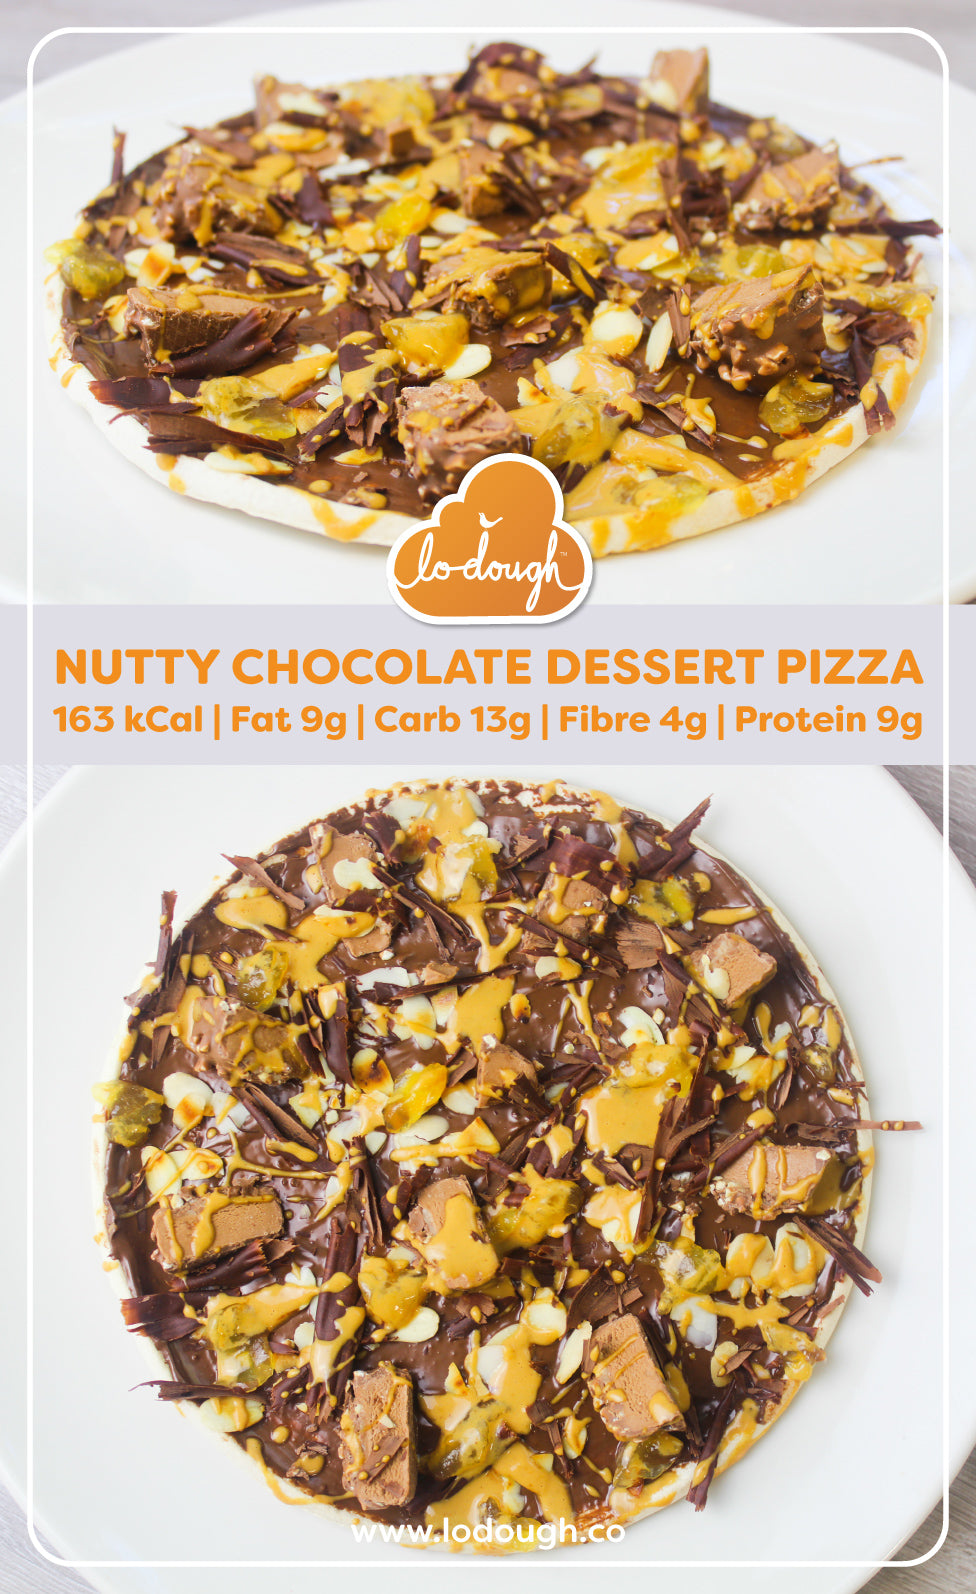 Chocolate and Nut Dessert Pizza